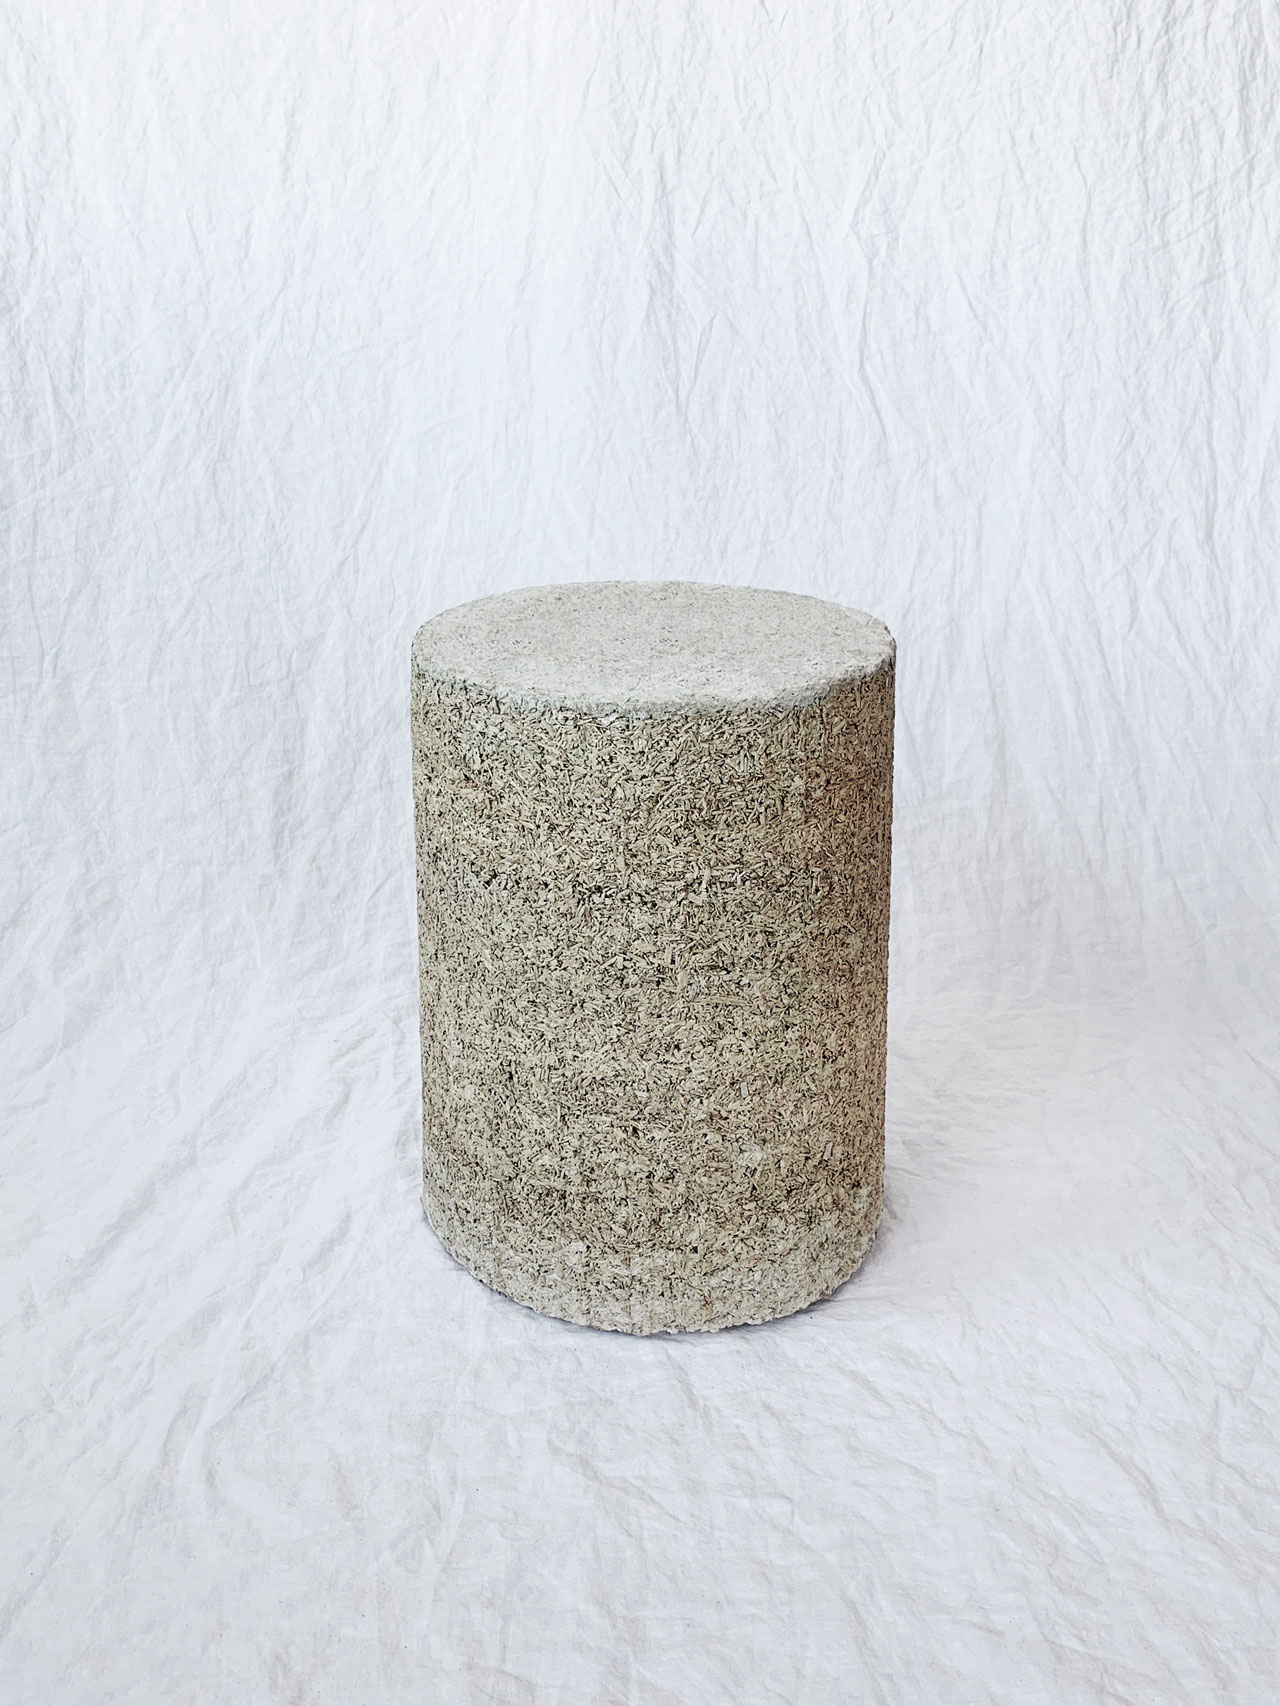 Hempcrete DIY Stool by Ian Anderson